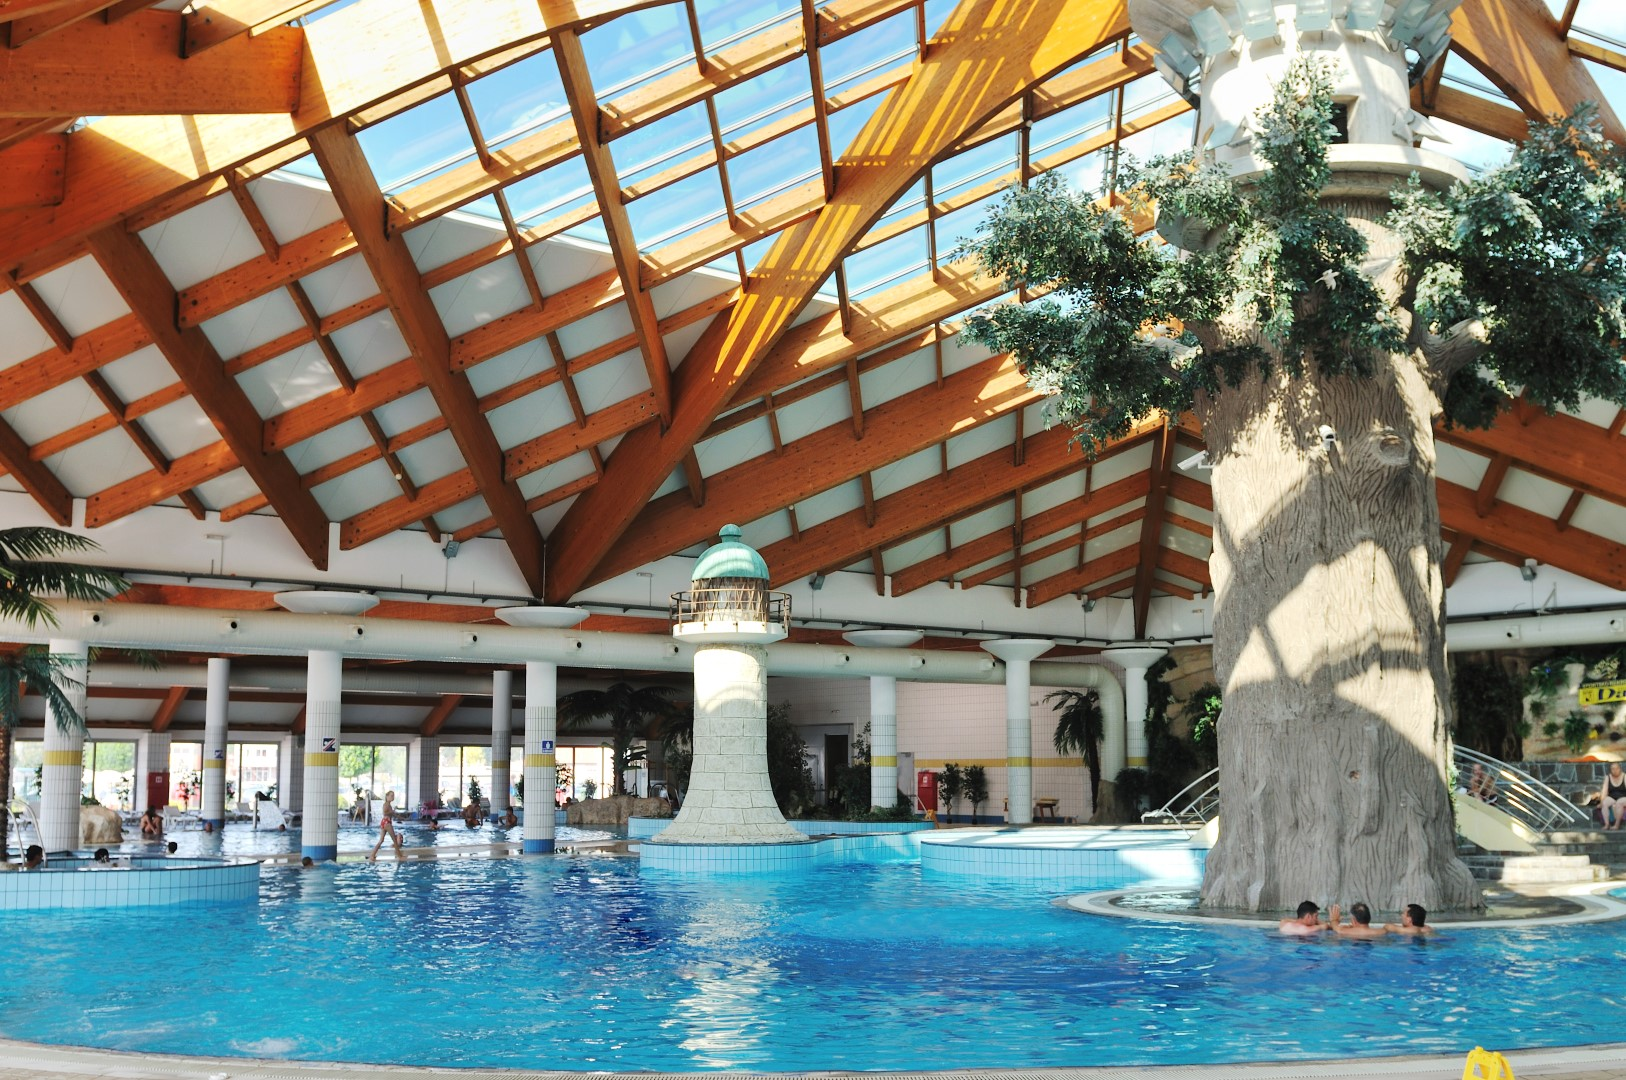 Ozone for swimming pools and spas chlorine alternative - Can you over shock a swimming pool ...